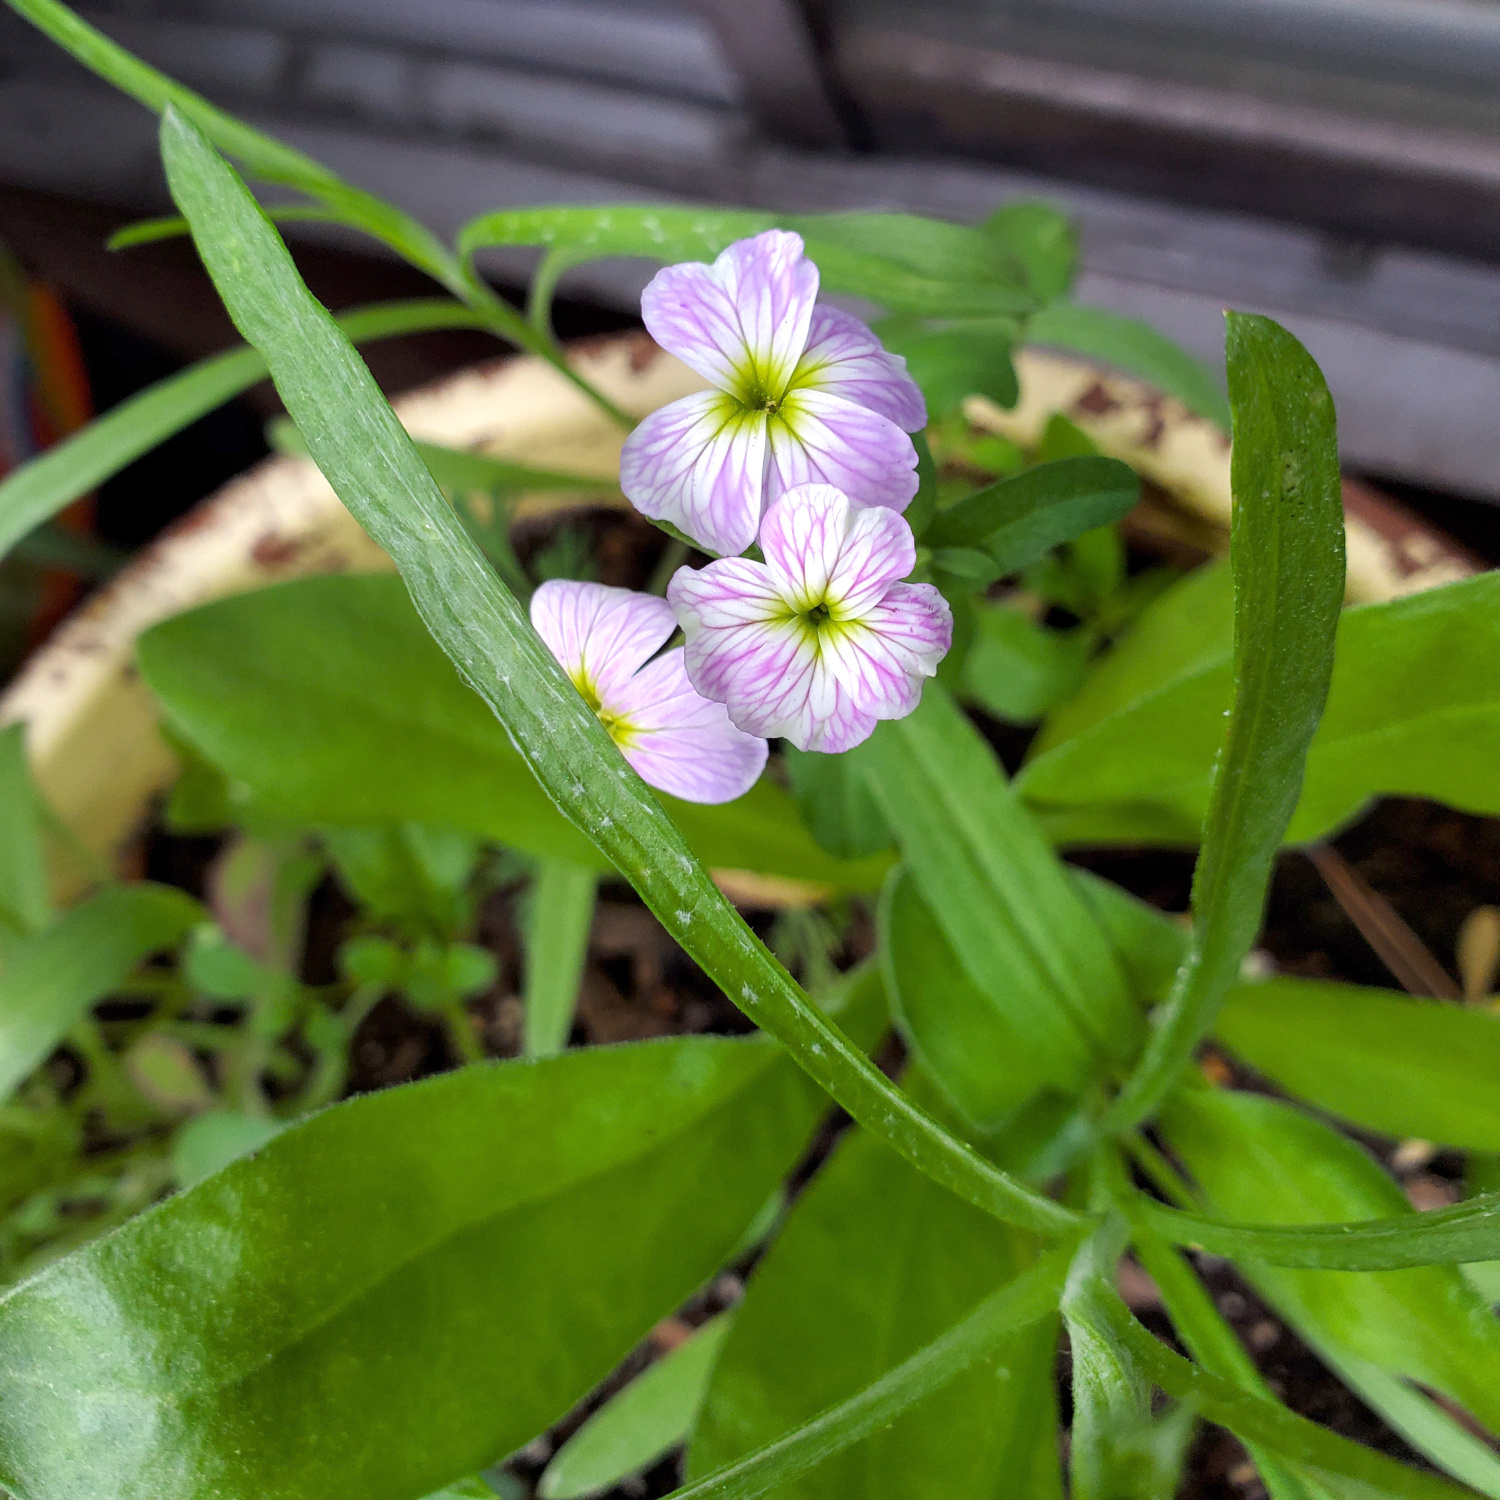 The first of the wildflowers has bloomed with a wonderful streaked purple flower